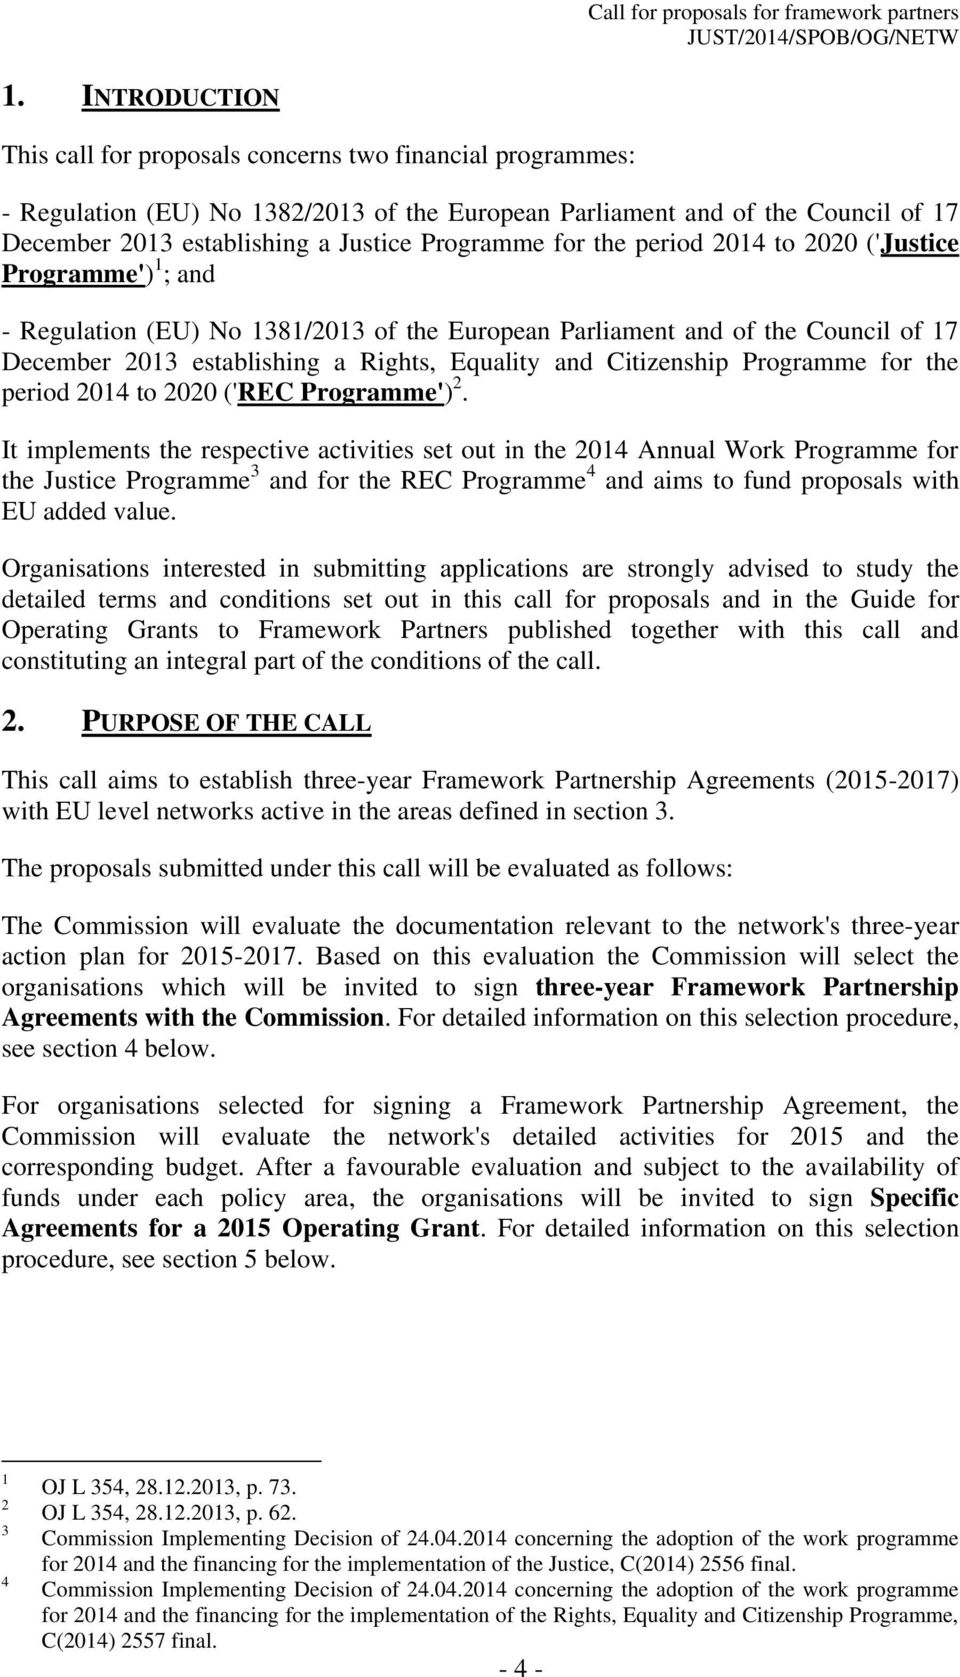 and Citizenship Programme for the period 2014 to 2020 ('REC Programme') 2.